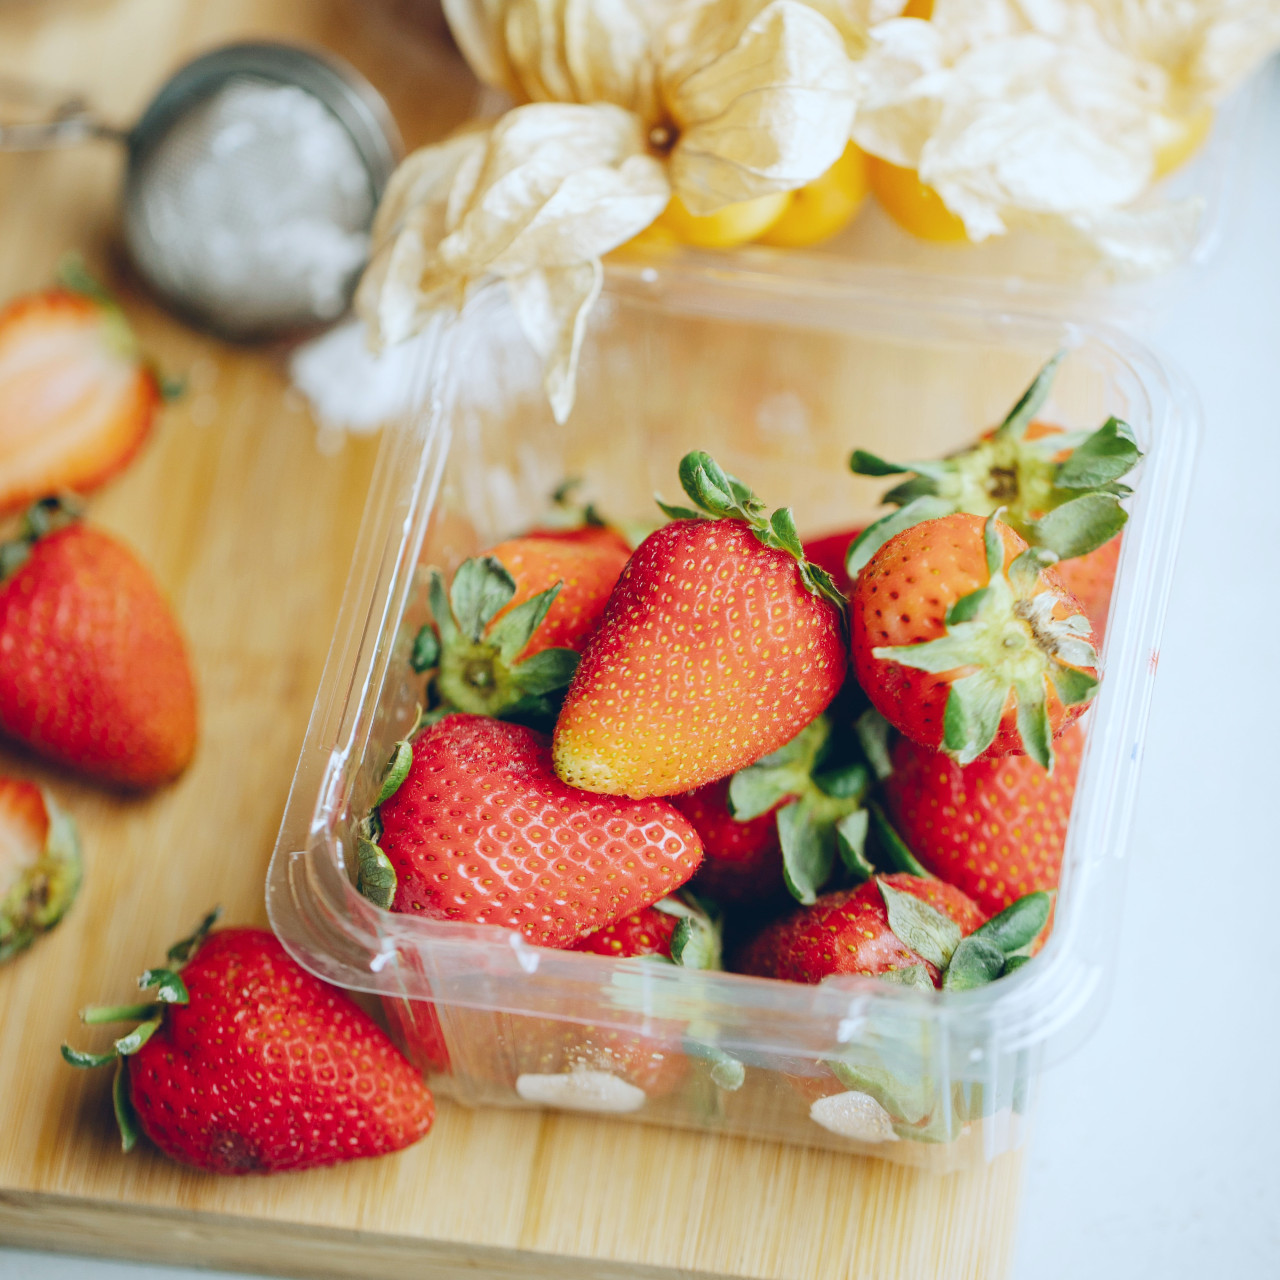 Cut waste at home: Reusable food containers can be anything